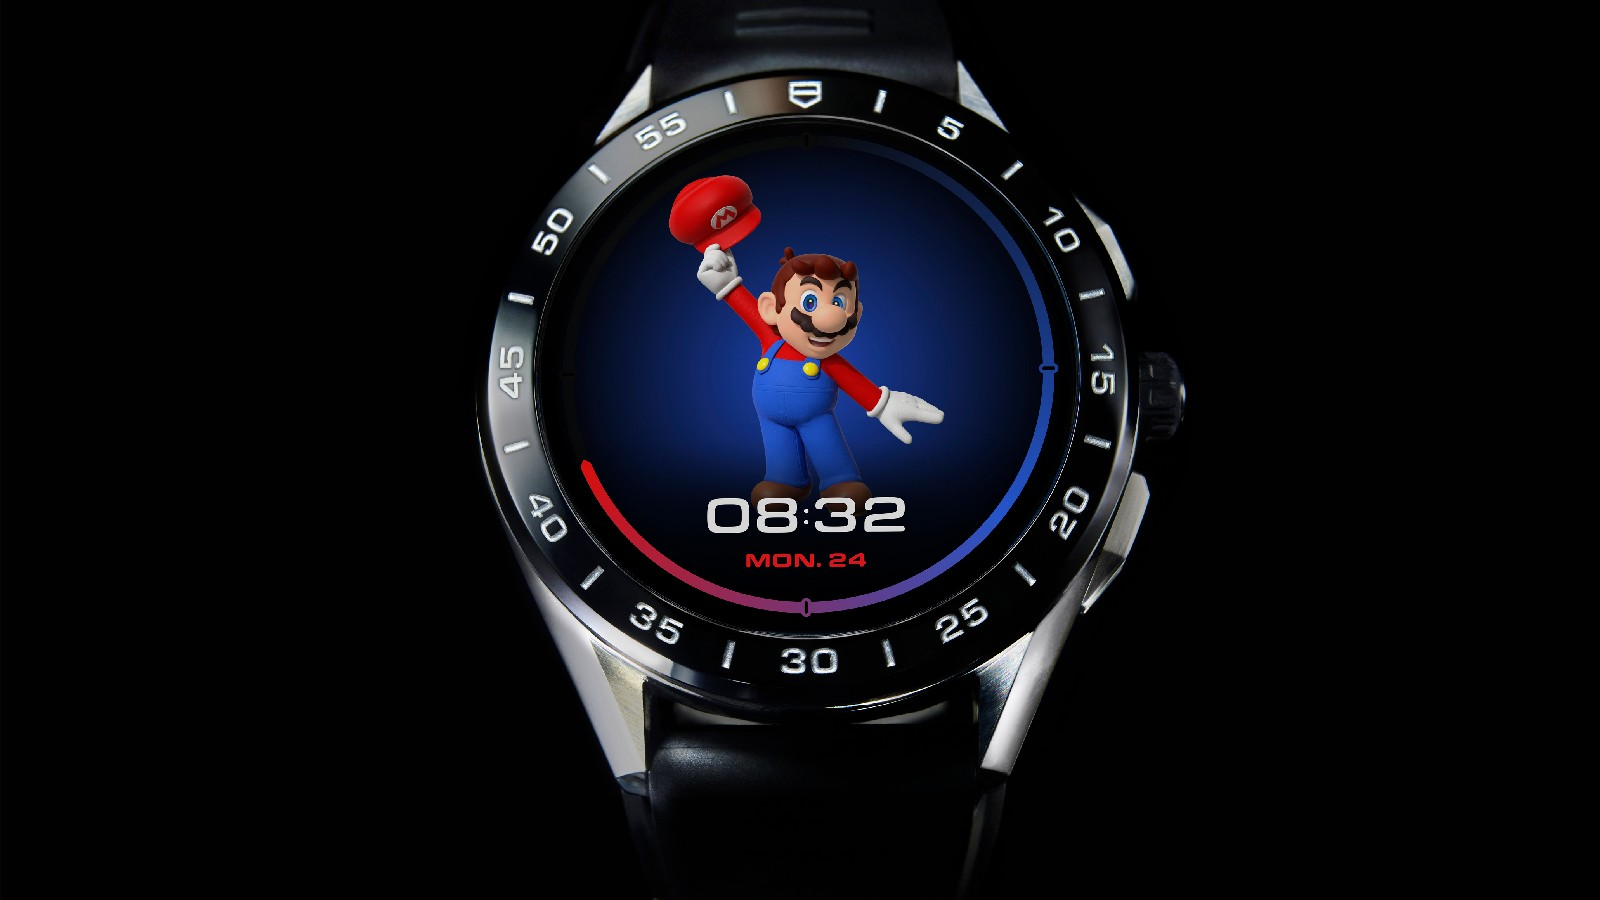 Tag Heuer made a Super Mario-themed smartwatch so why not